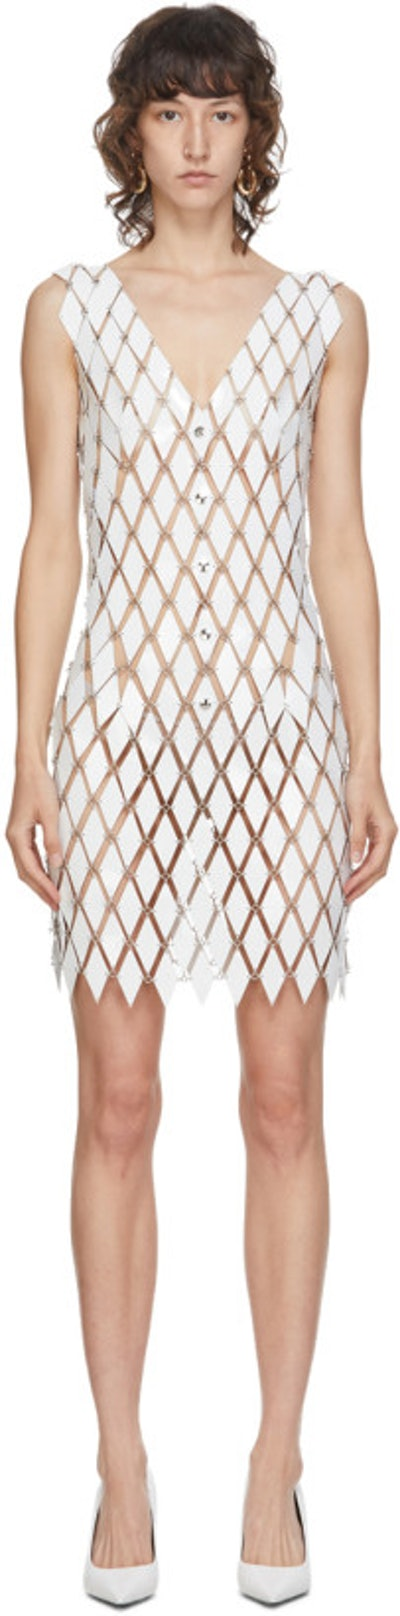 White Linked Diamond Disc Dress